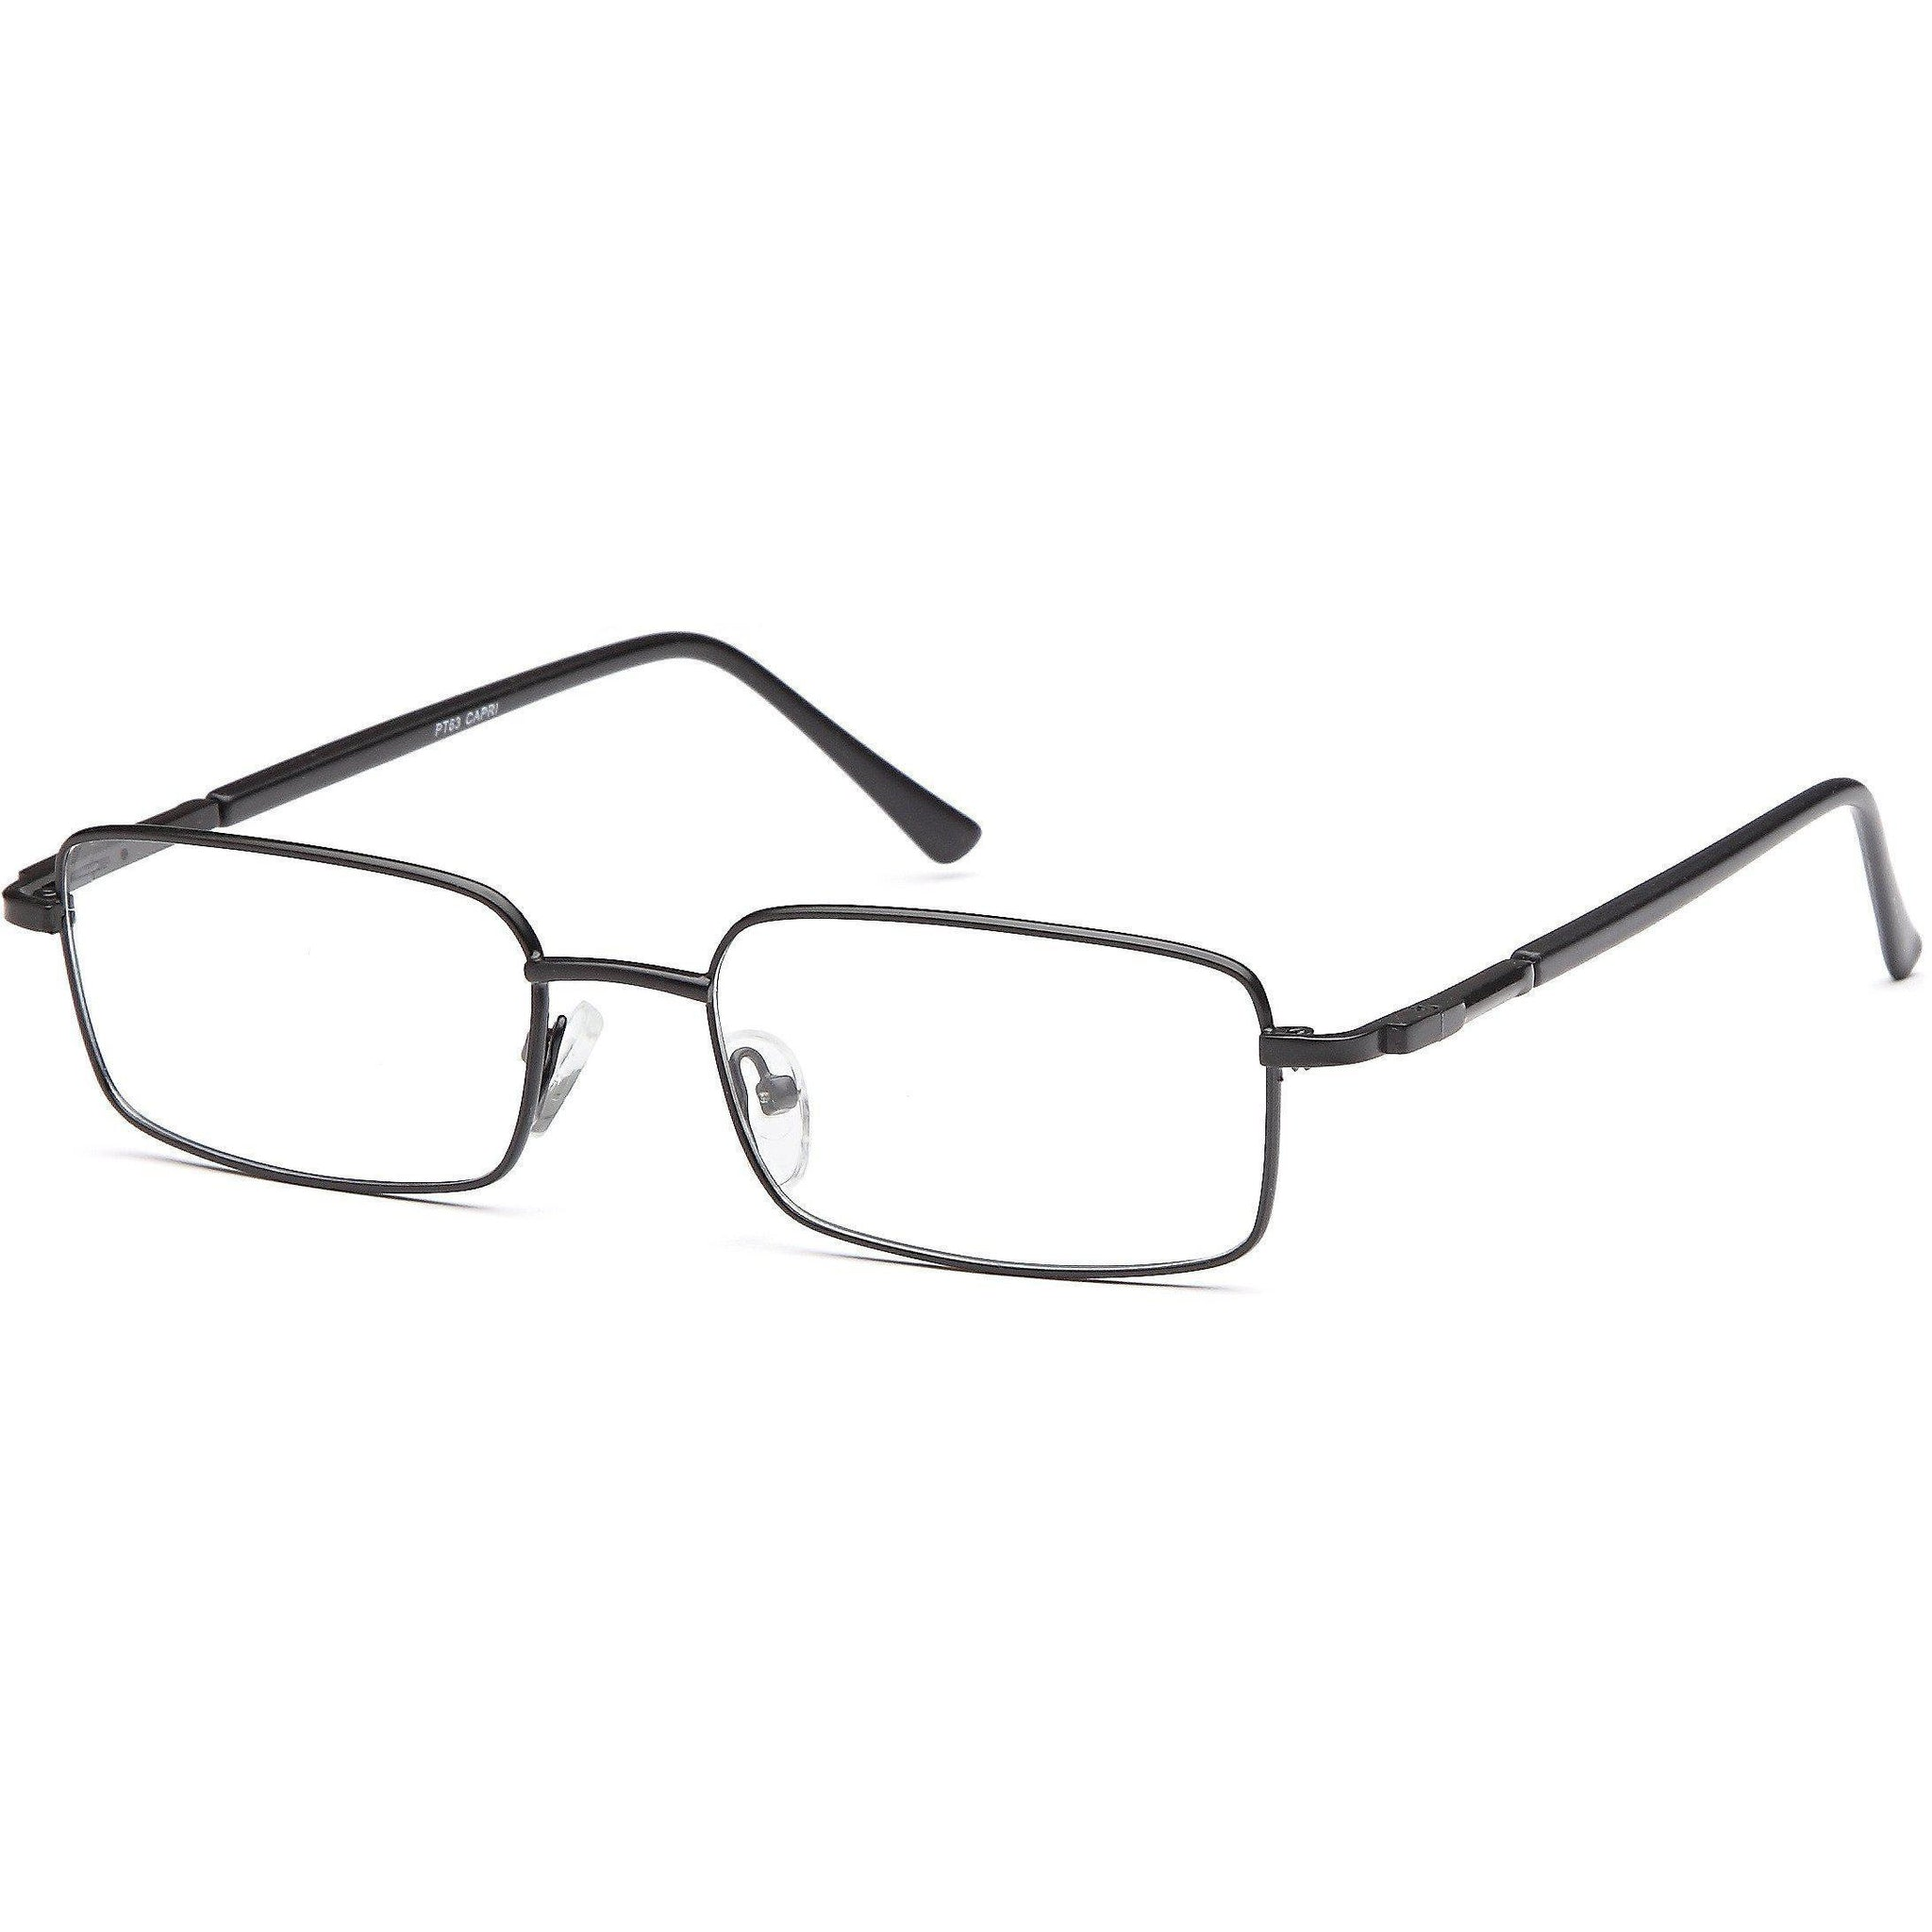 Appletree Prescription Glasses PT 63 Eyeglasses Frame